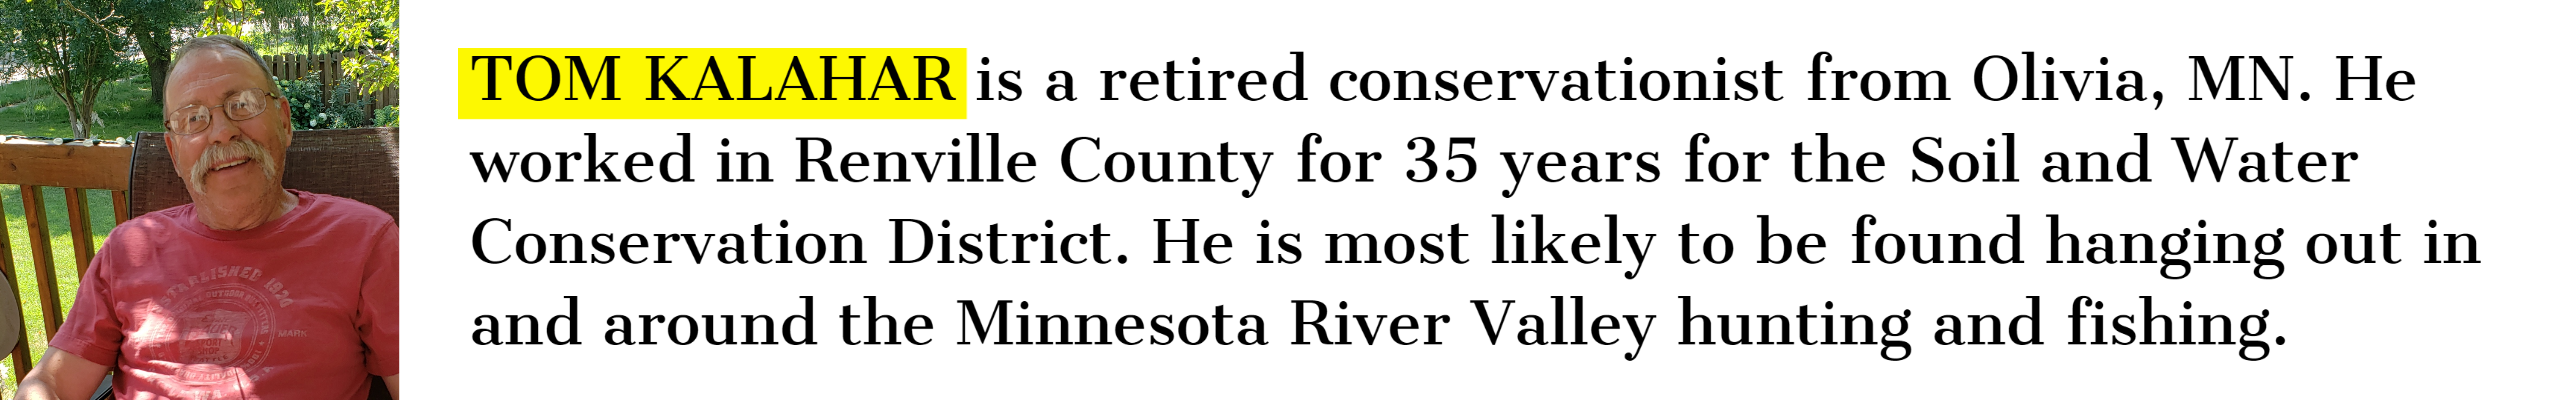 TOM KALAHAR is a retired conservationist from Olivia, MN. He worked in Renville County for 35 years for the Soil and Water Conservation District. He is most likely to be found hanging out in and around the Minnesota River Valley hunting and fishing.